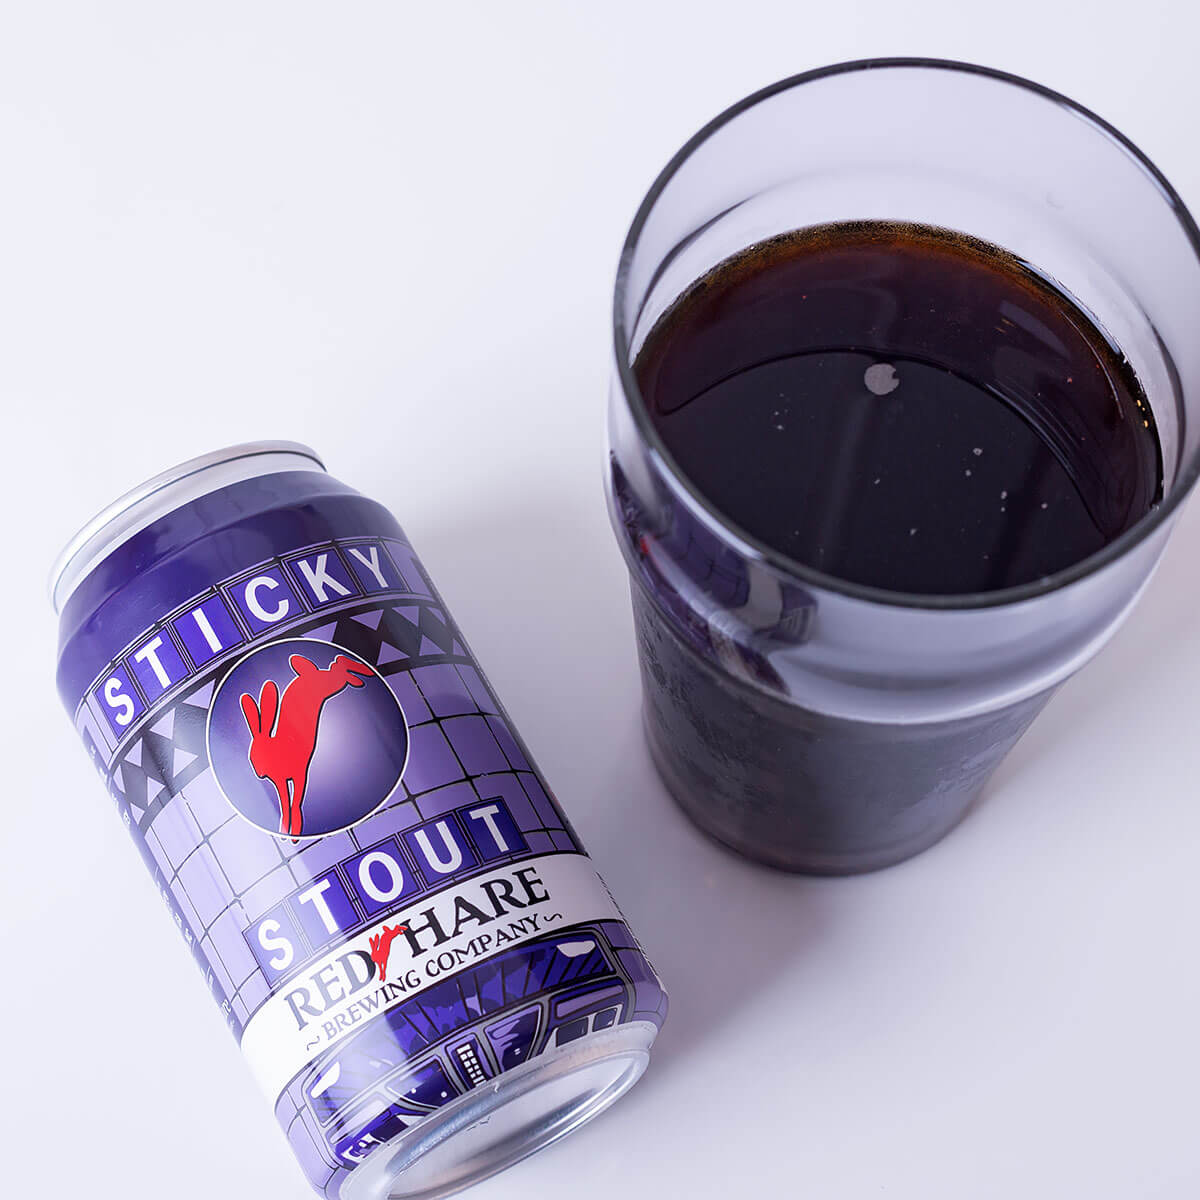 Sticky Stout is an English-style Oatmeal Stout by Red Hare Brewing Company that blends roast malt, floral hops, and sweet dark fruit.